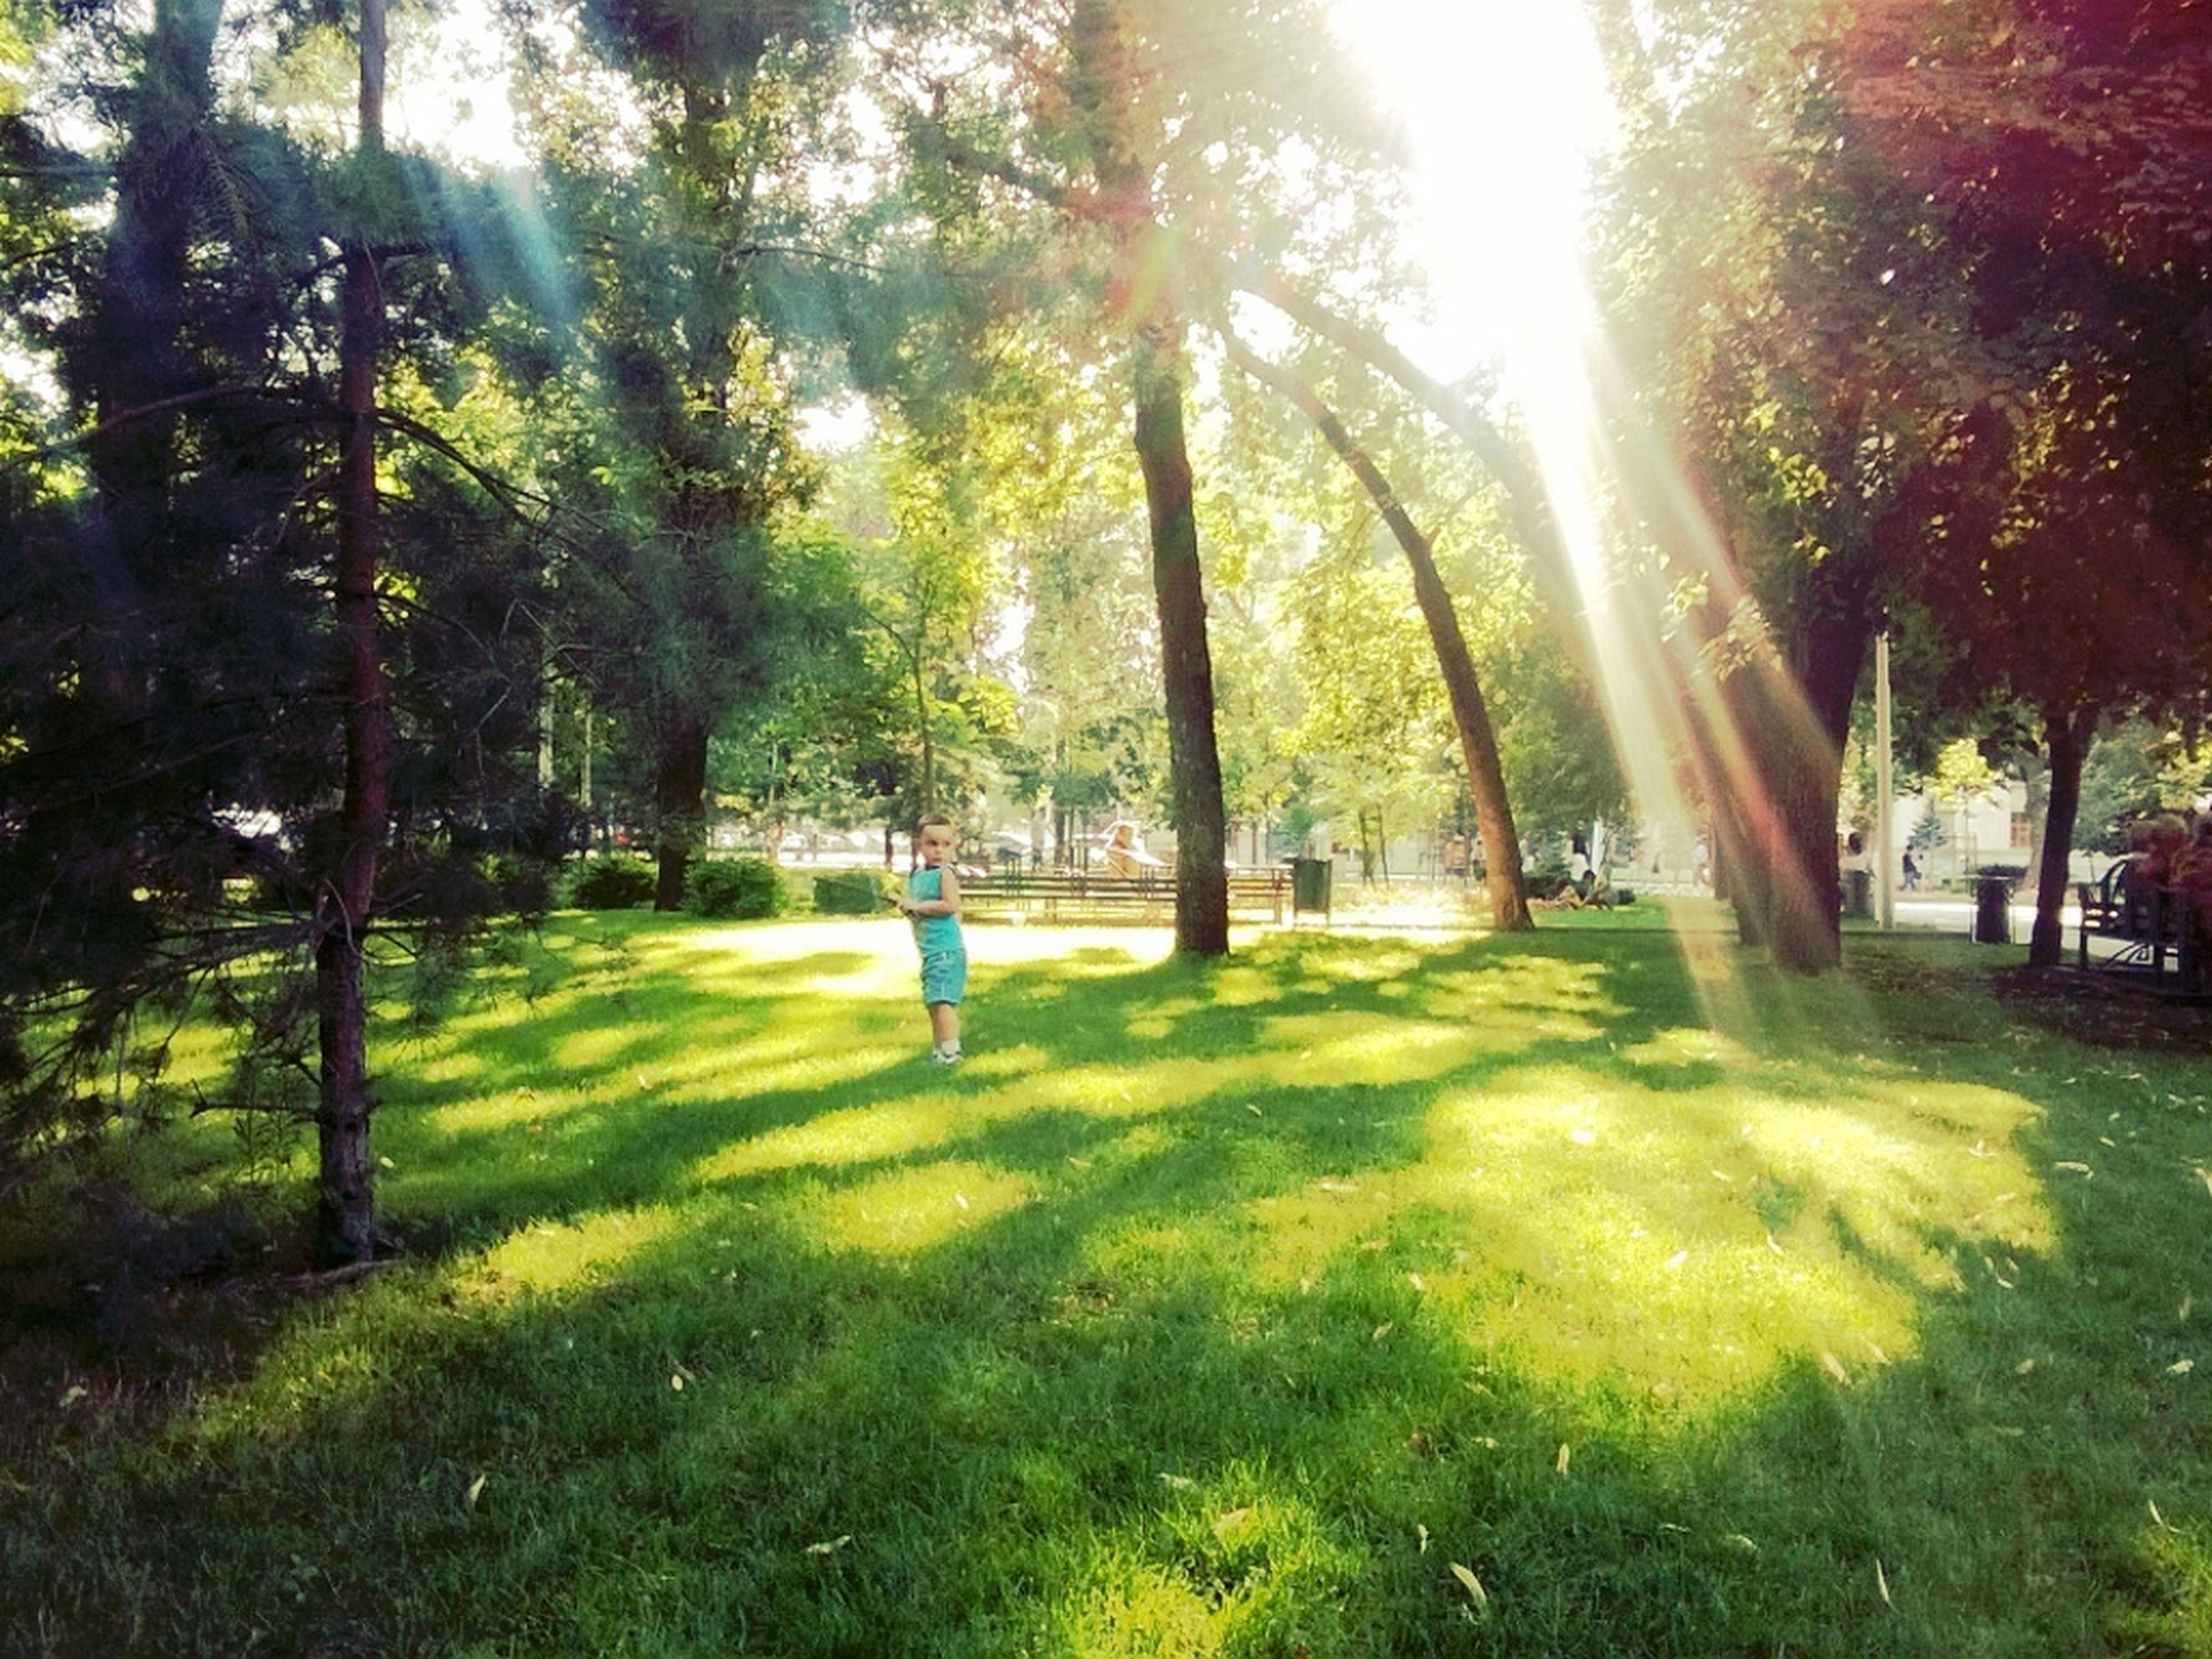 tree, grass, park - man made space, green color, growth, tree trunk, sunlight, lawn, park, tranquility, nature, grassy, shadow, footpath, tranquil scene, day, field, incidental people, beauty in nature, outdoors